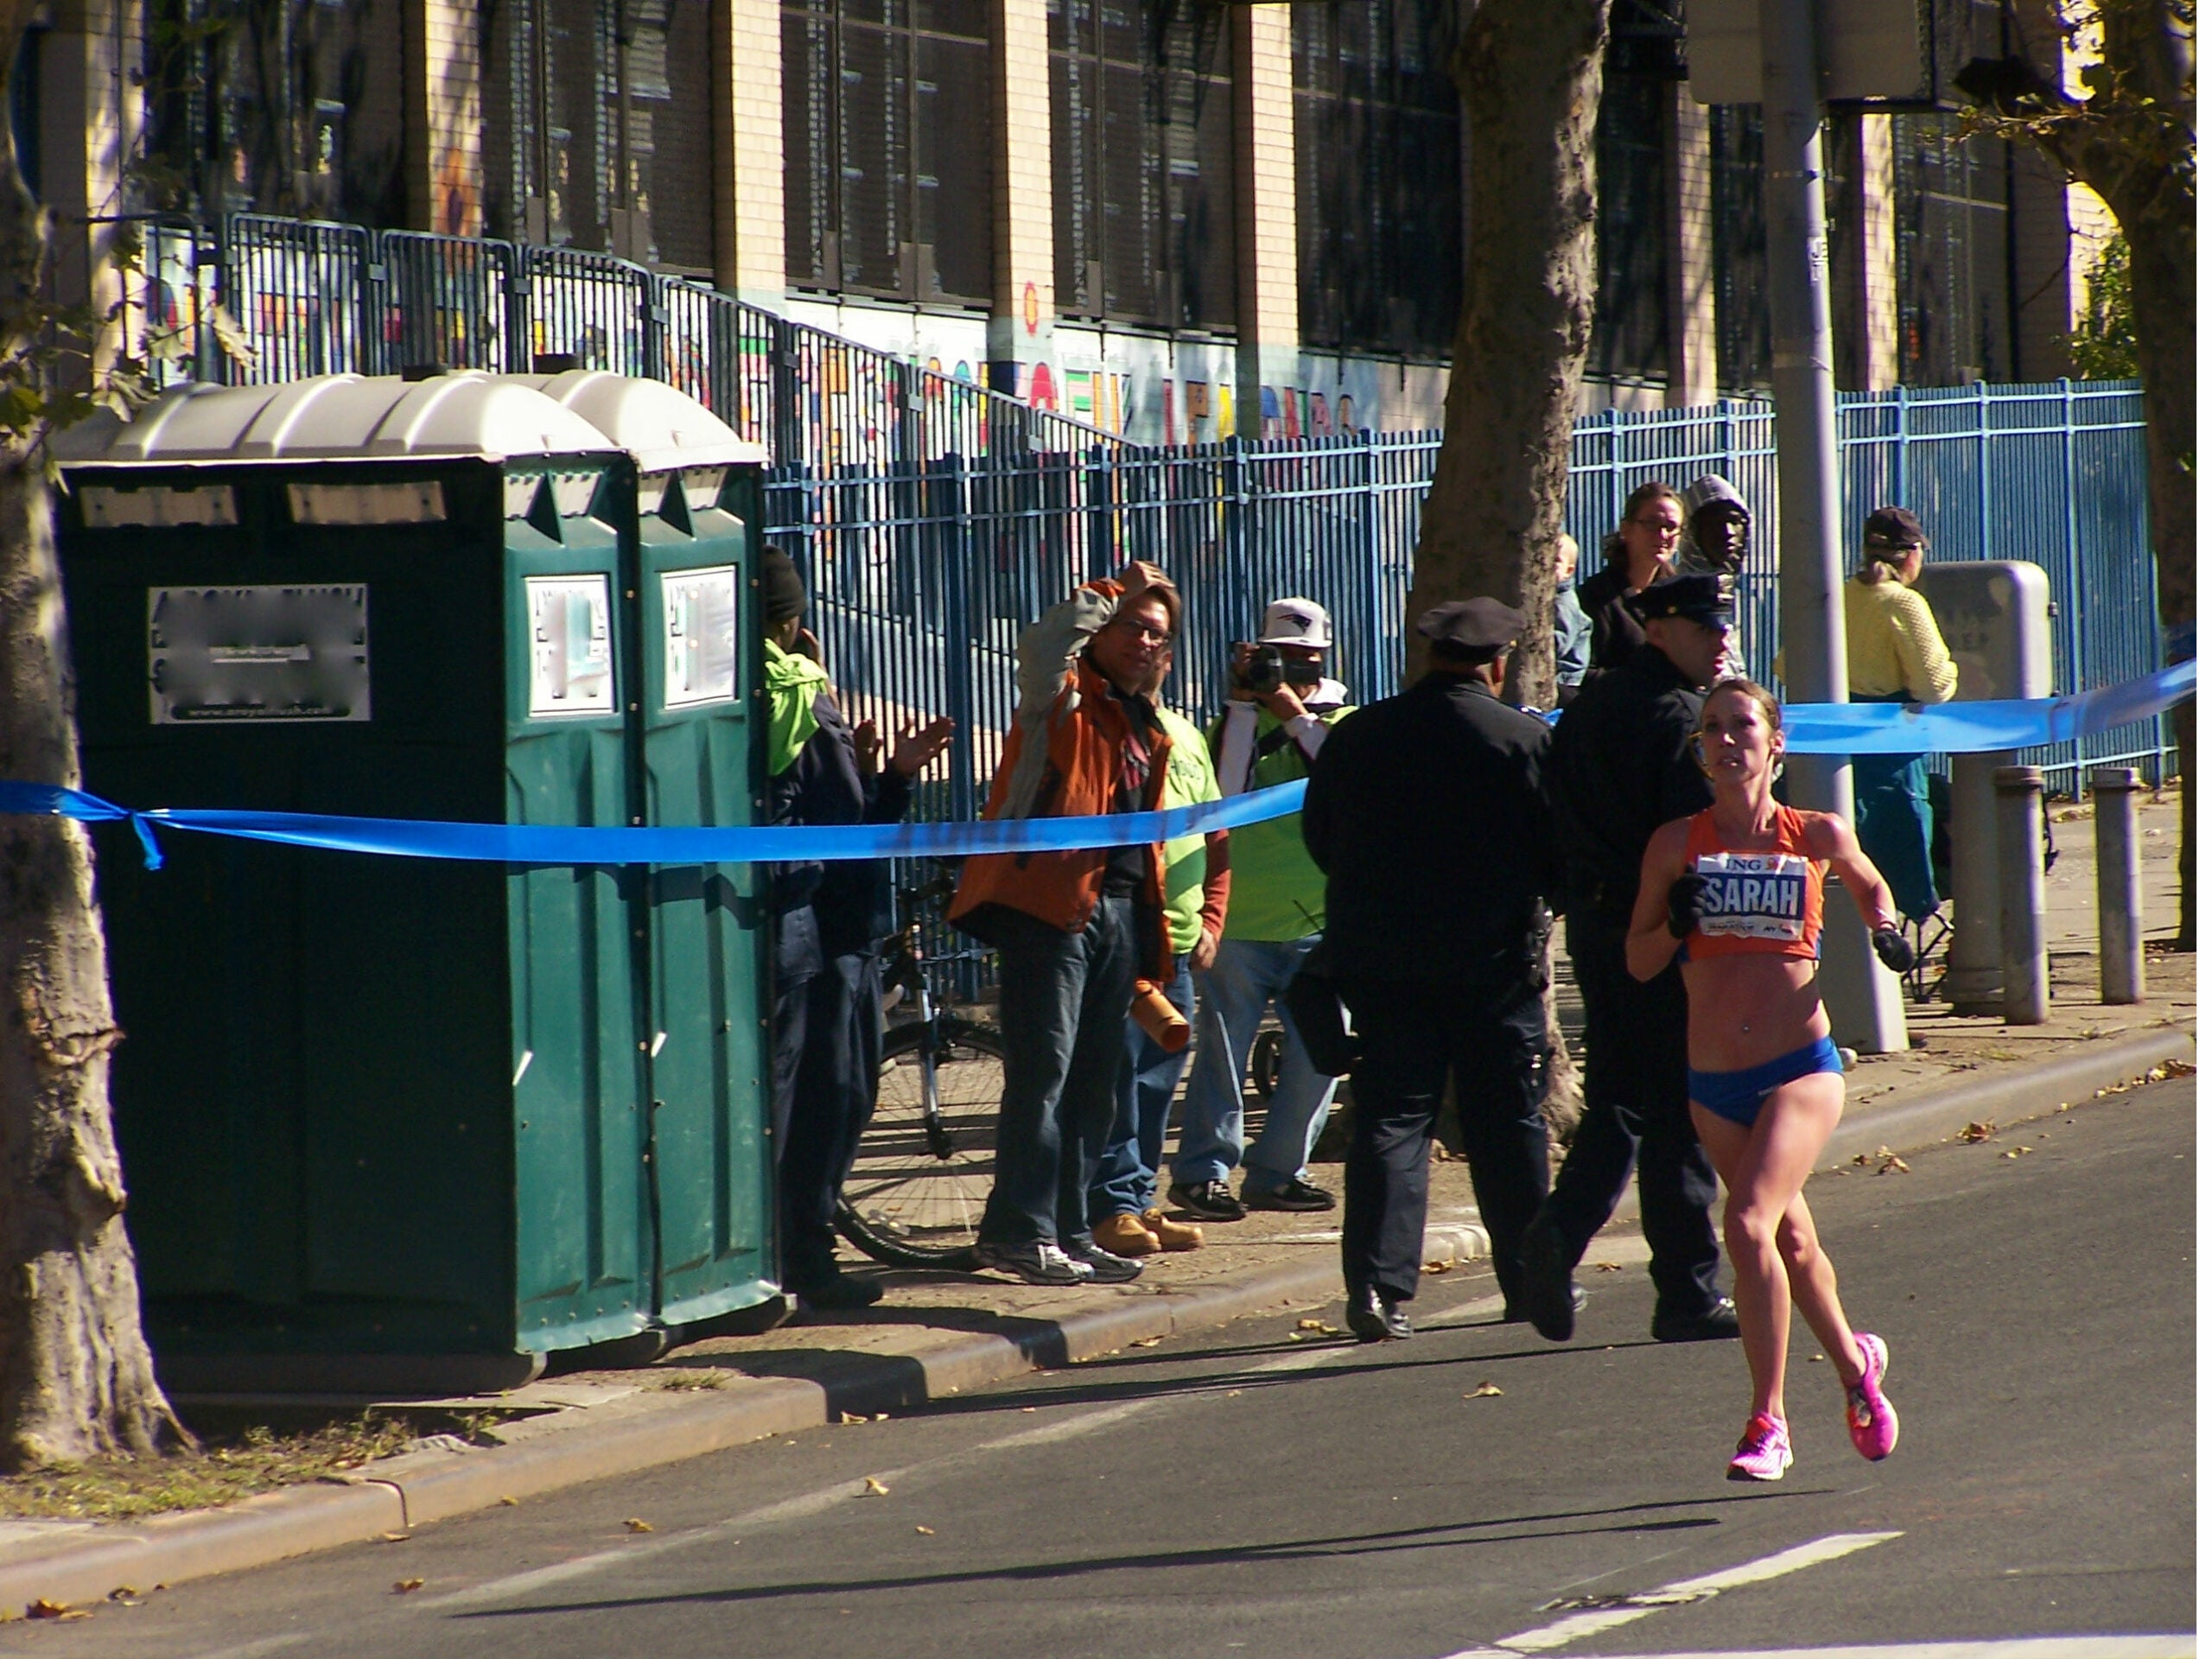 Sarah Porter comes in 21st place in the 2011 TCS marathon, with the help of some portable toilets.